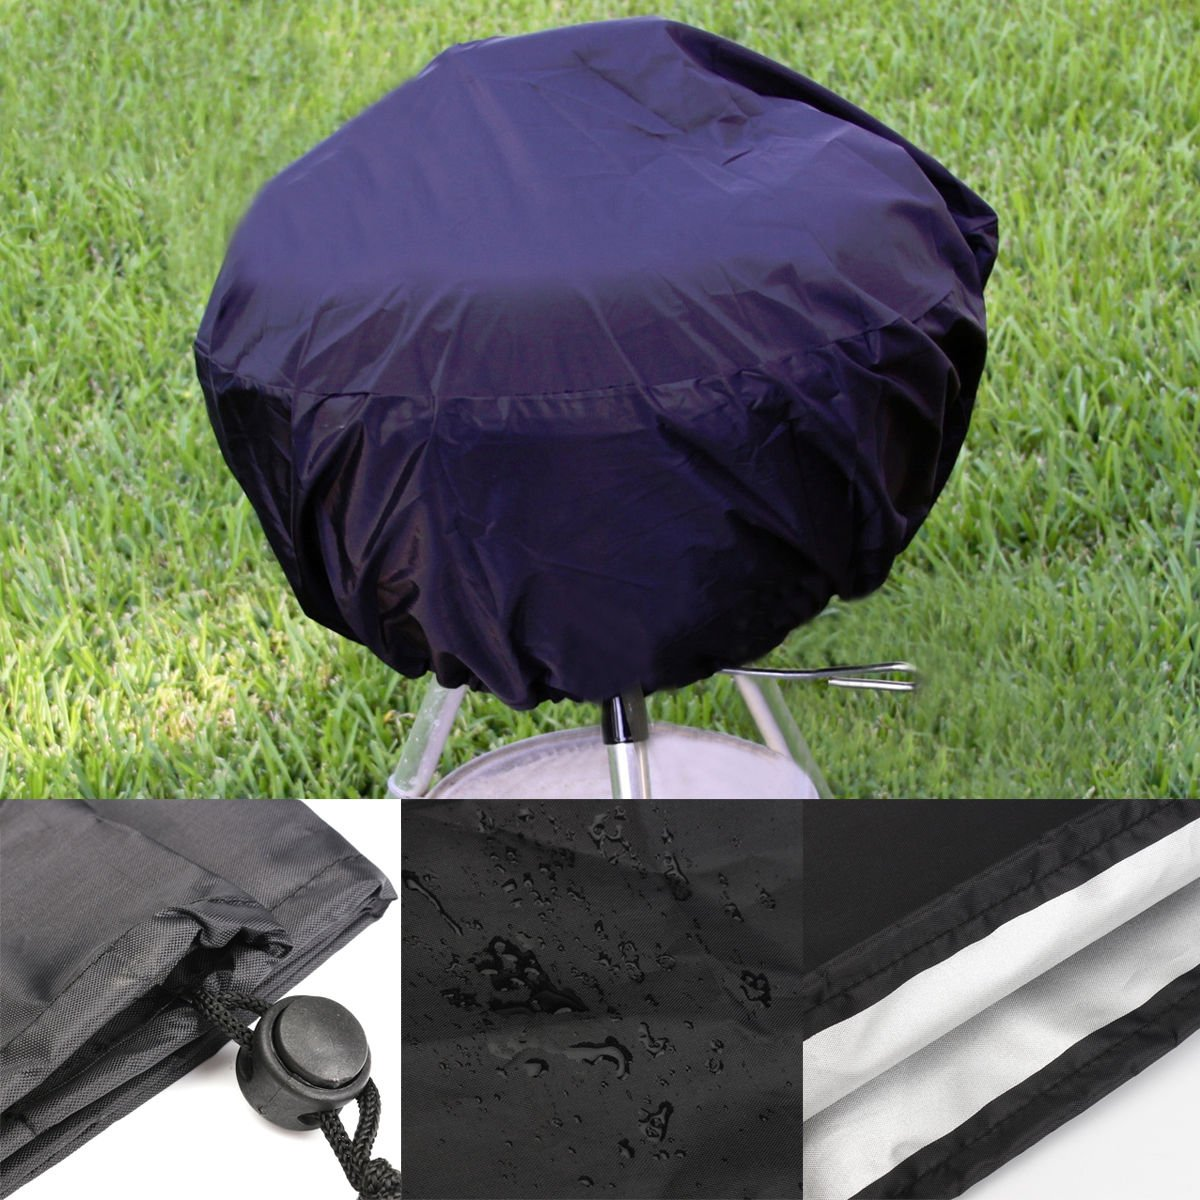 Round BBQ Grill Cover Strongly with Easy fasten drawstring fits Weber Jumbo Joe Gold 18'' tabletop model Strongly Lightweight and easy to clean Protection against sunshine, rains, snows black color